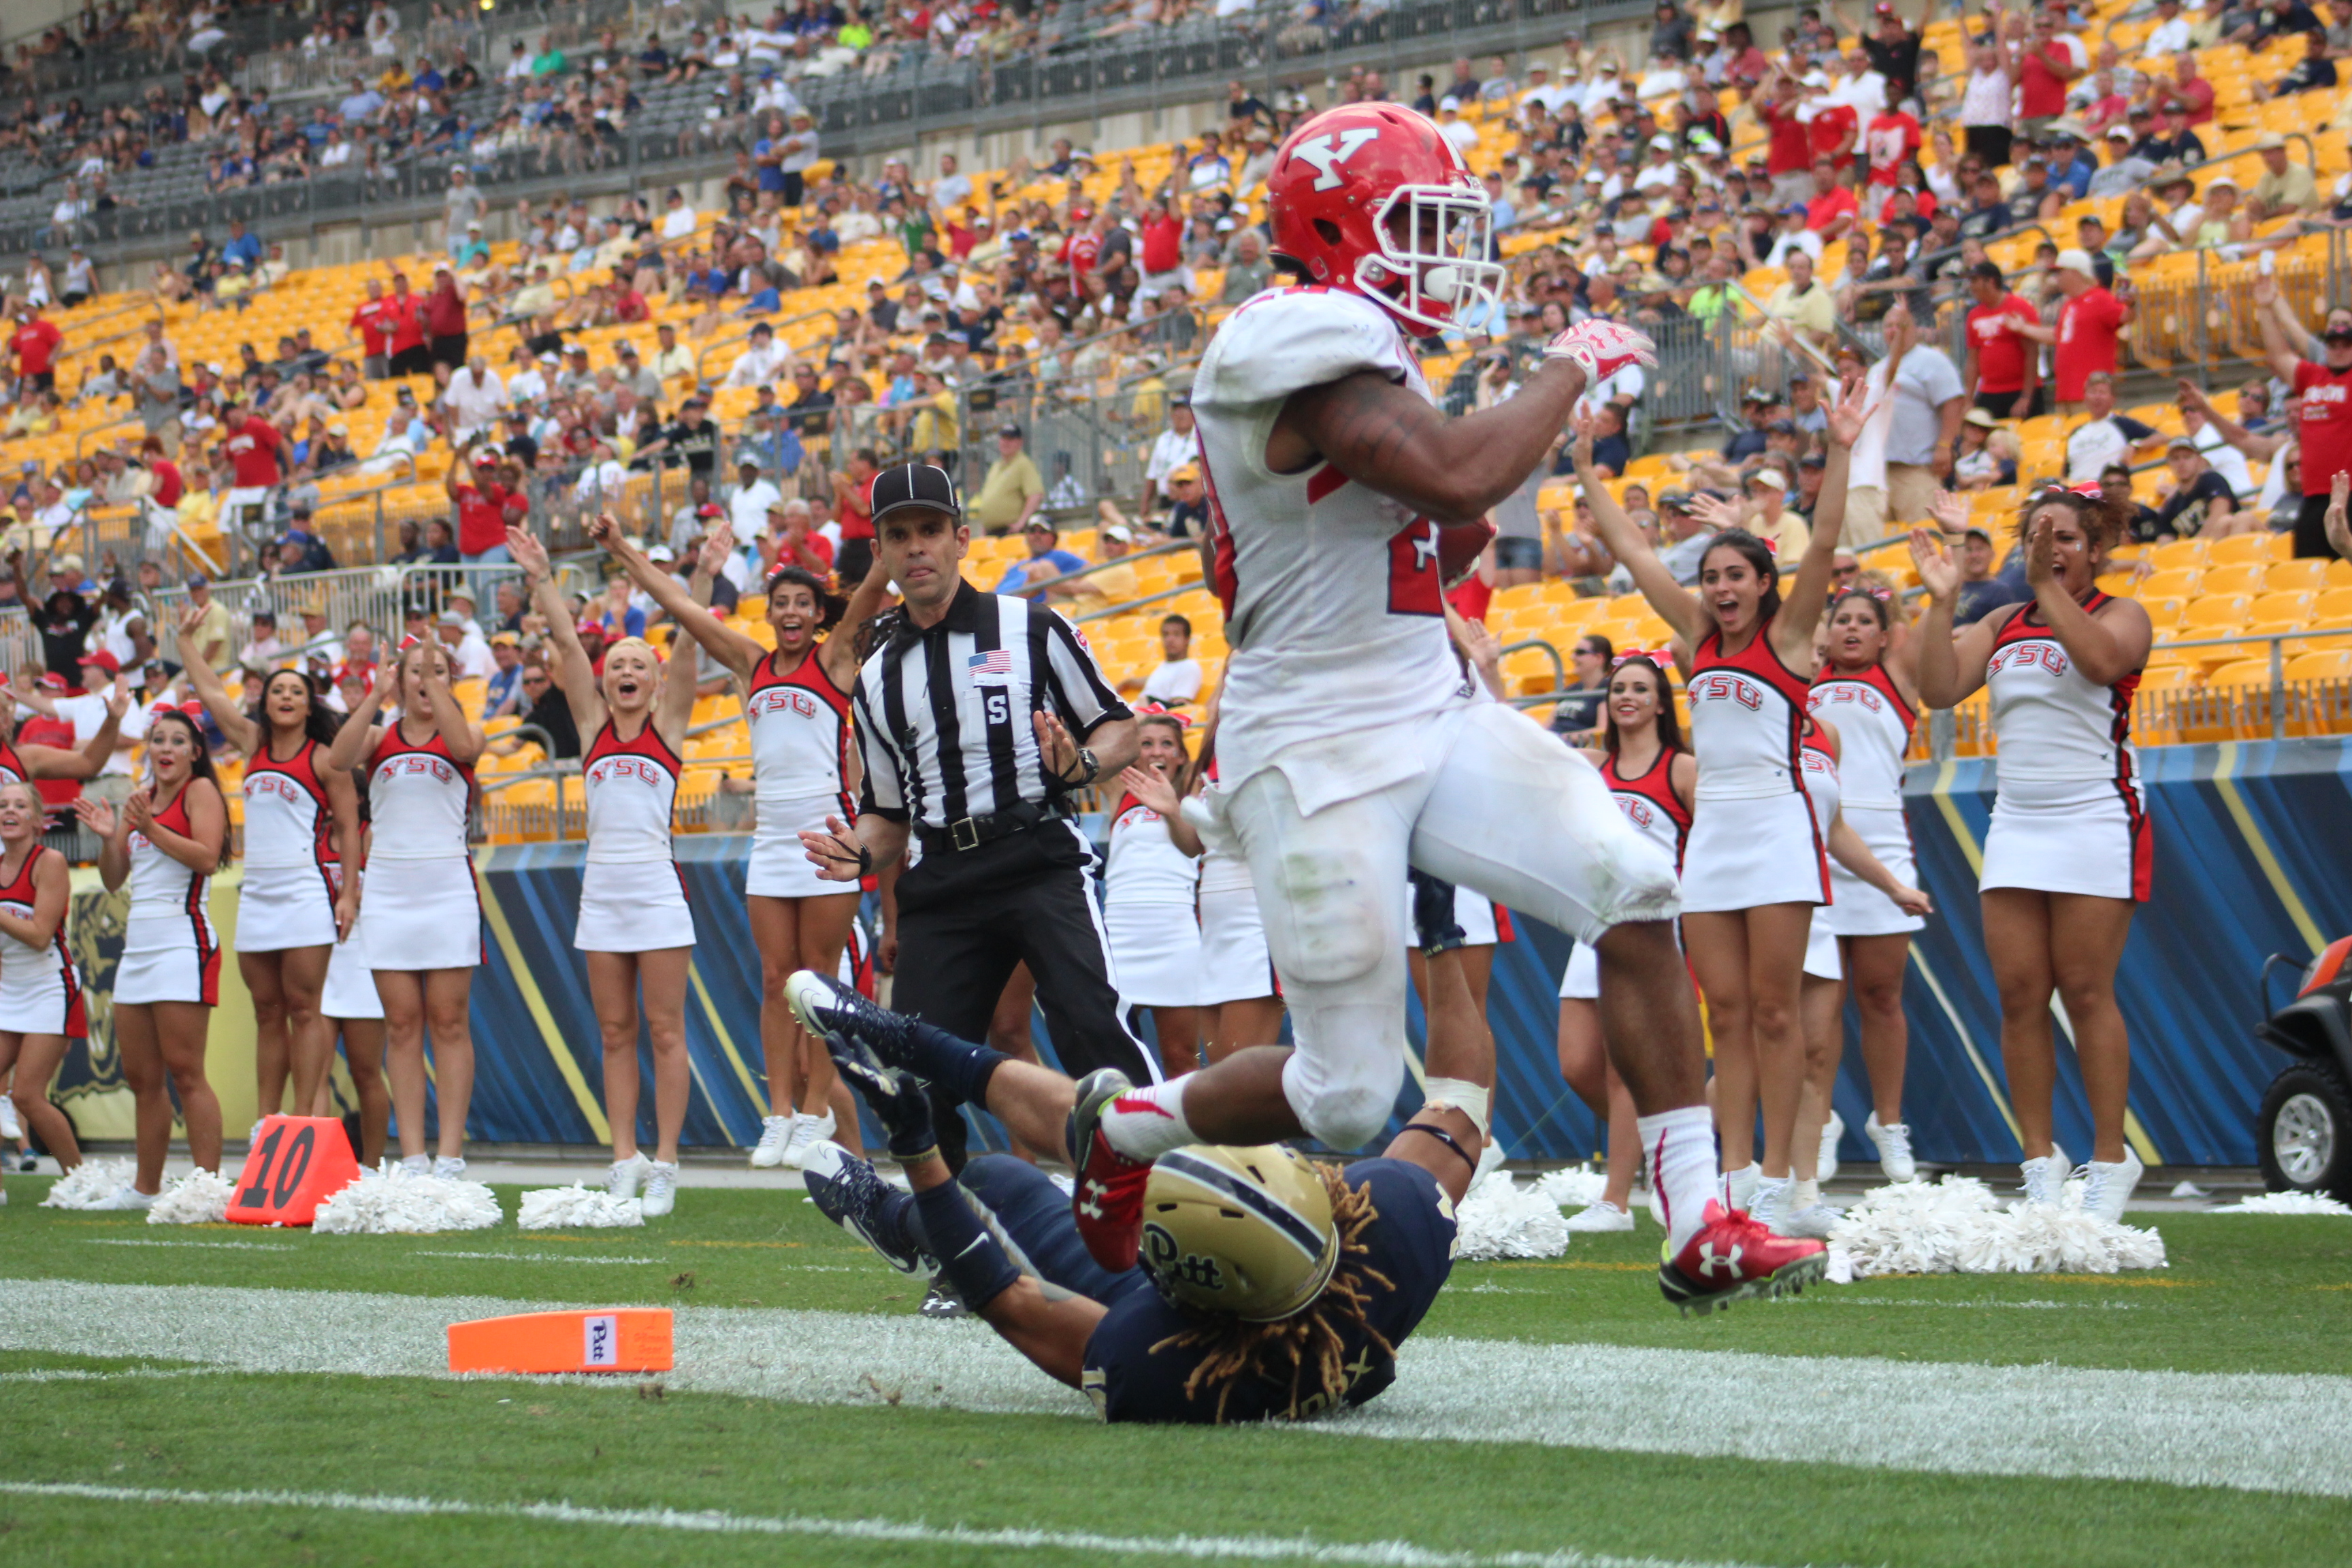 Youngstown State University running back Jody Webb (20) breaks a tackle from a Pitt defender as he scores his first touchdown of the season opener.